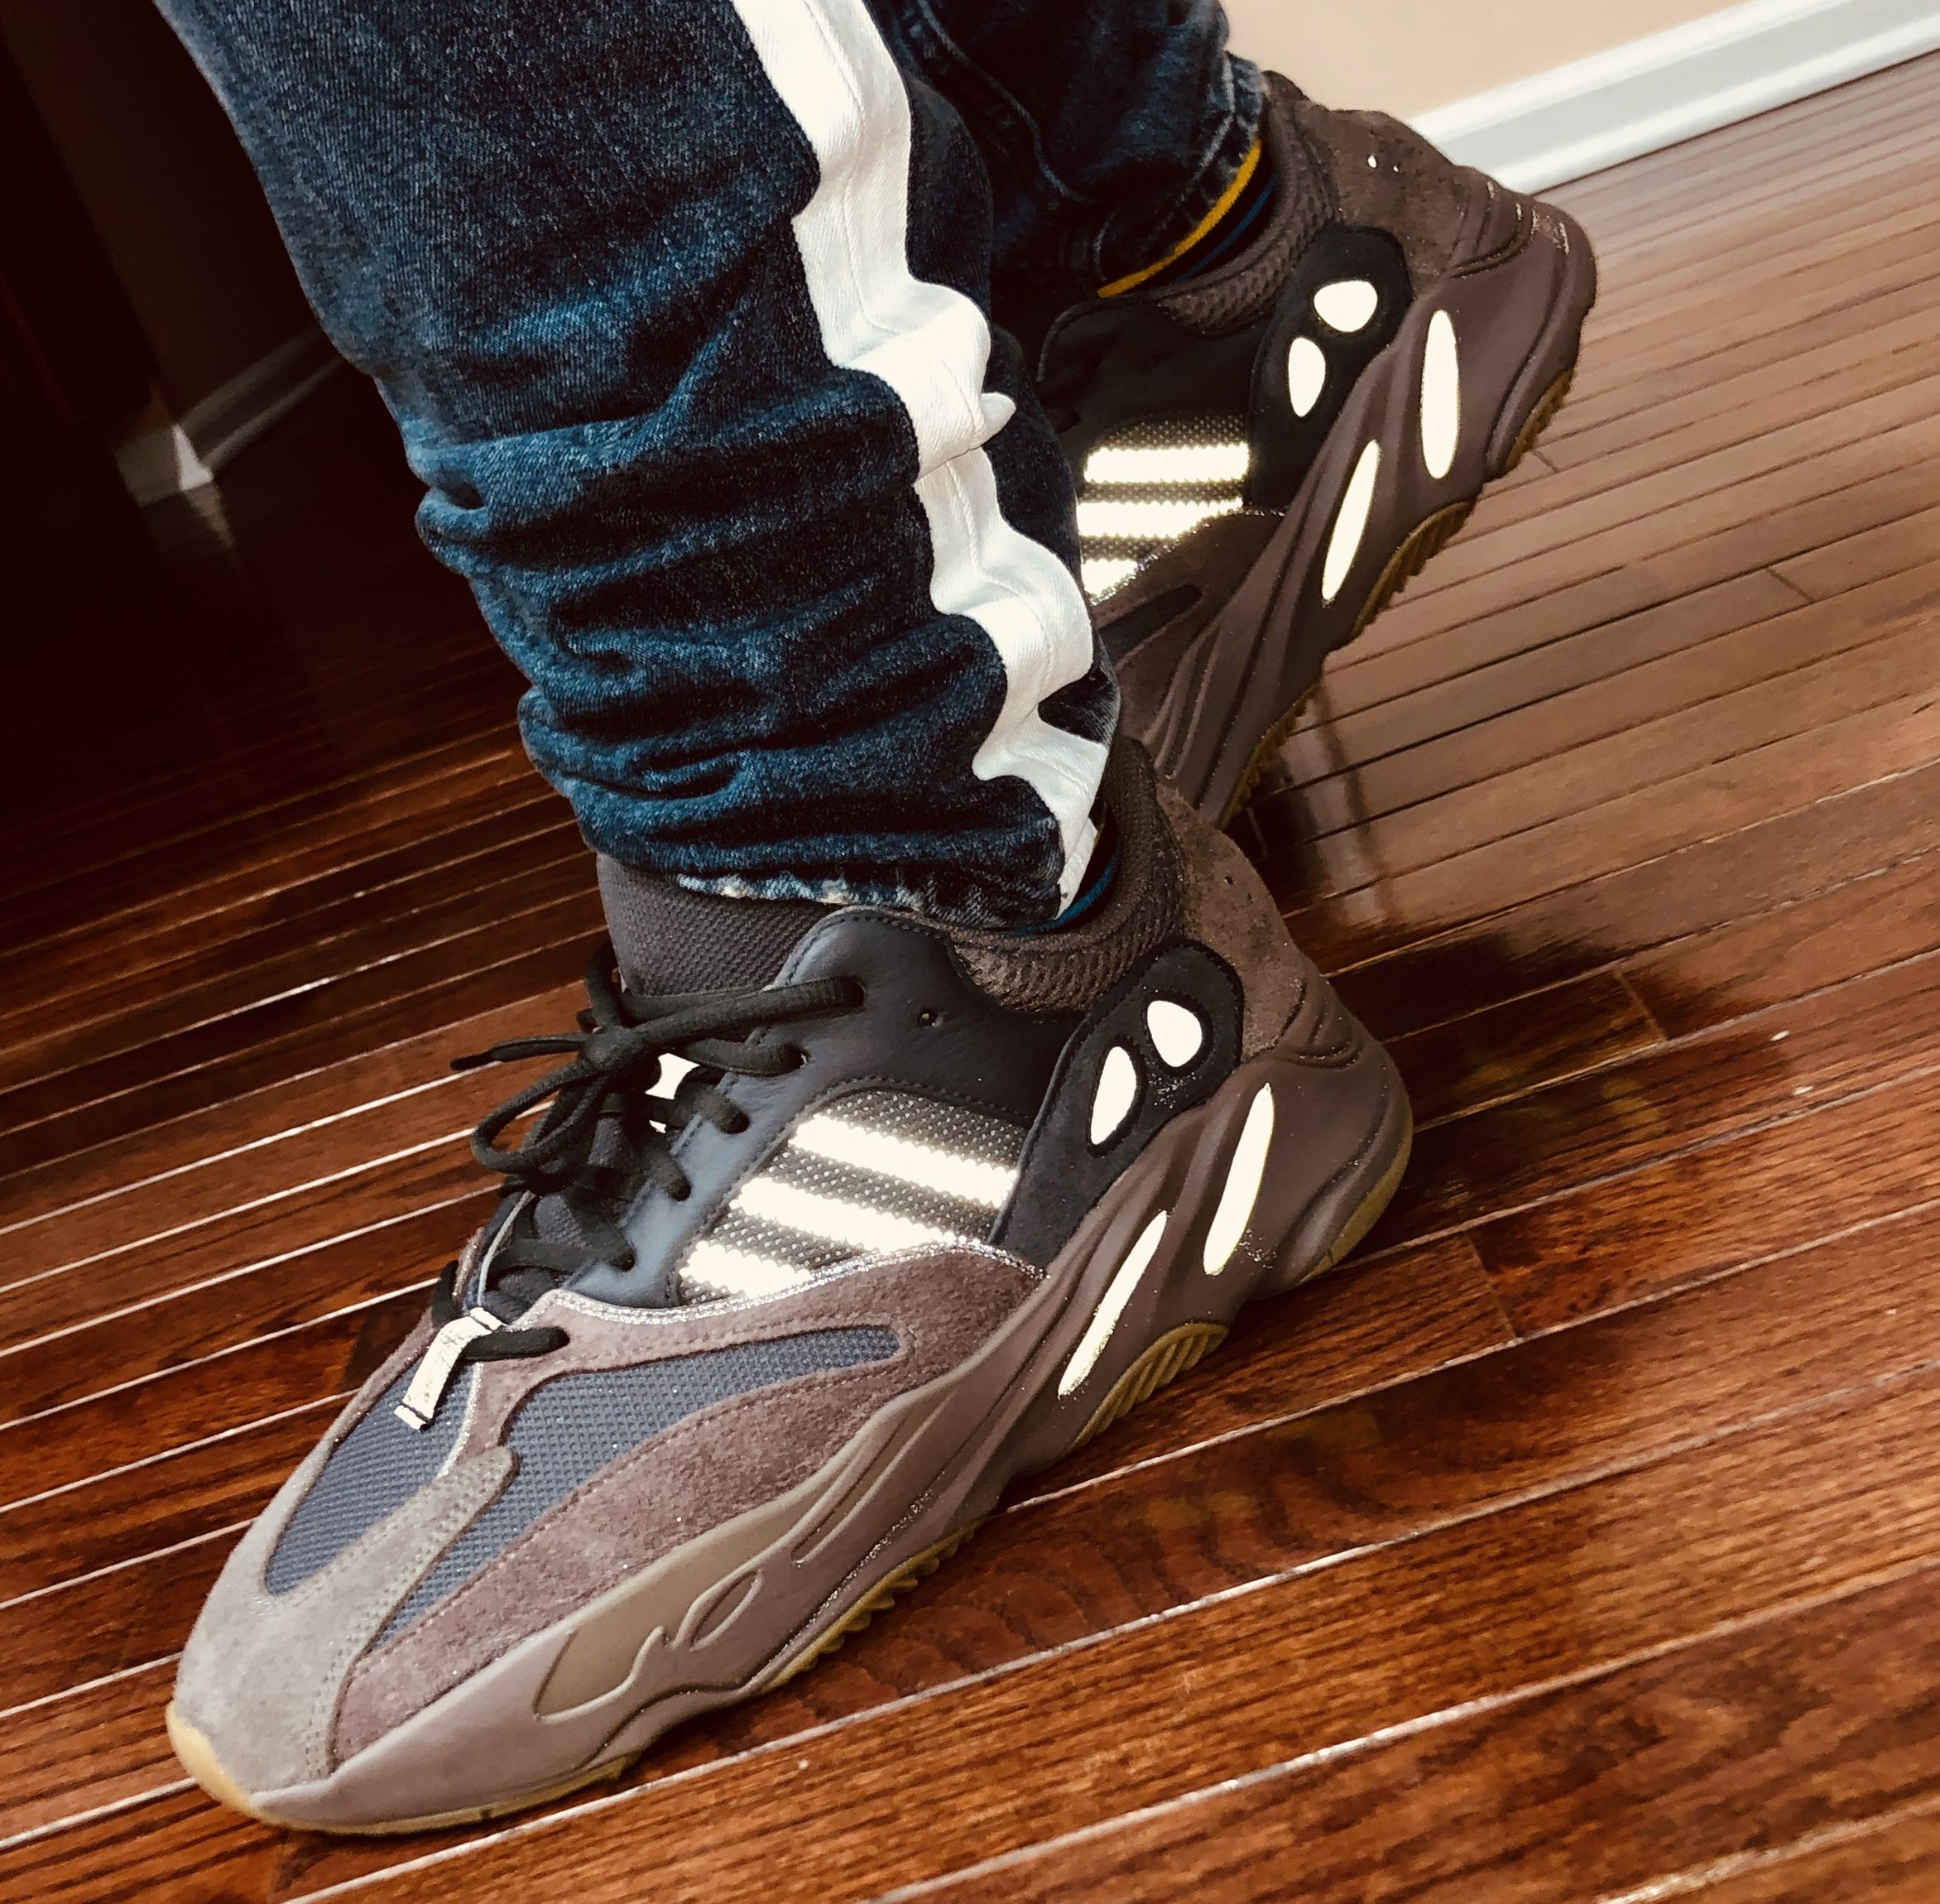 bf9c1b6473e9a Yeezy Boost 700 Mauve. Reflective effect shown due to camera flash ...